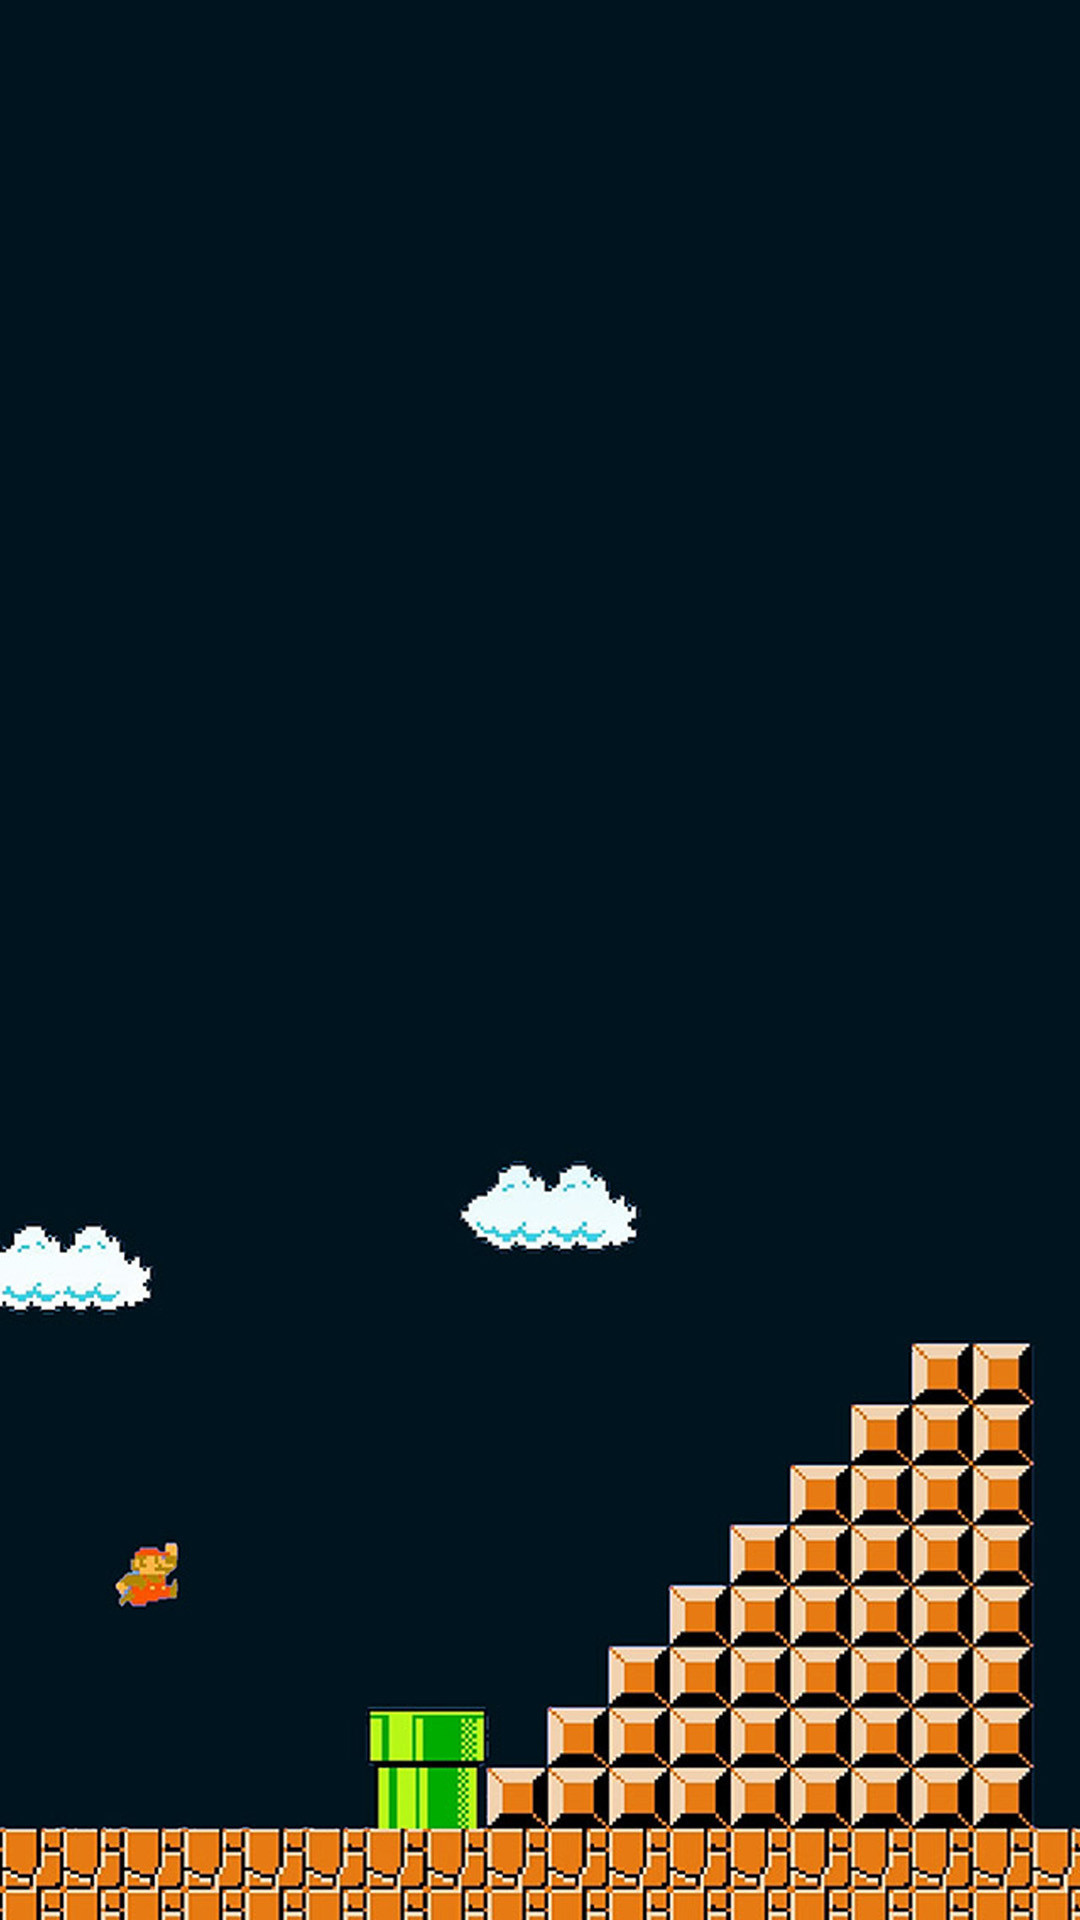 1080x1920 iPhone 6 plus Super Mario Nintendo HD Wallpaper